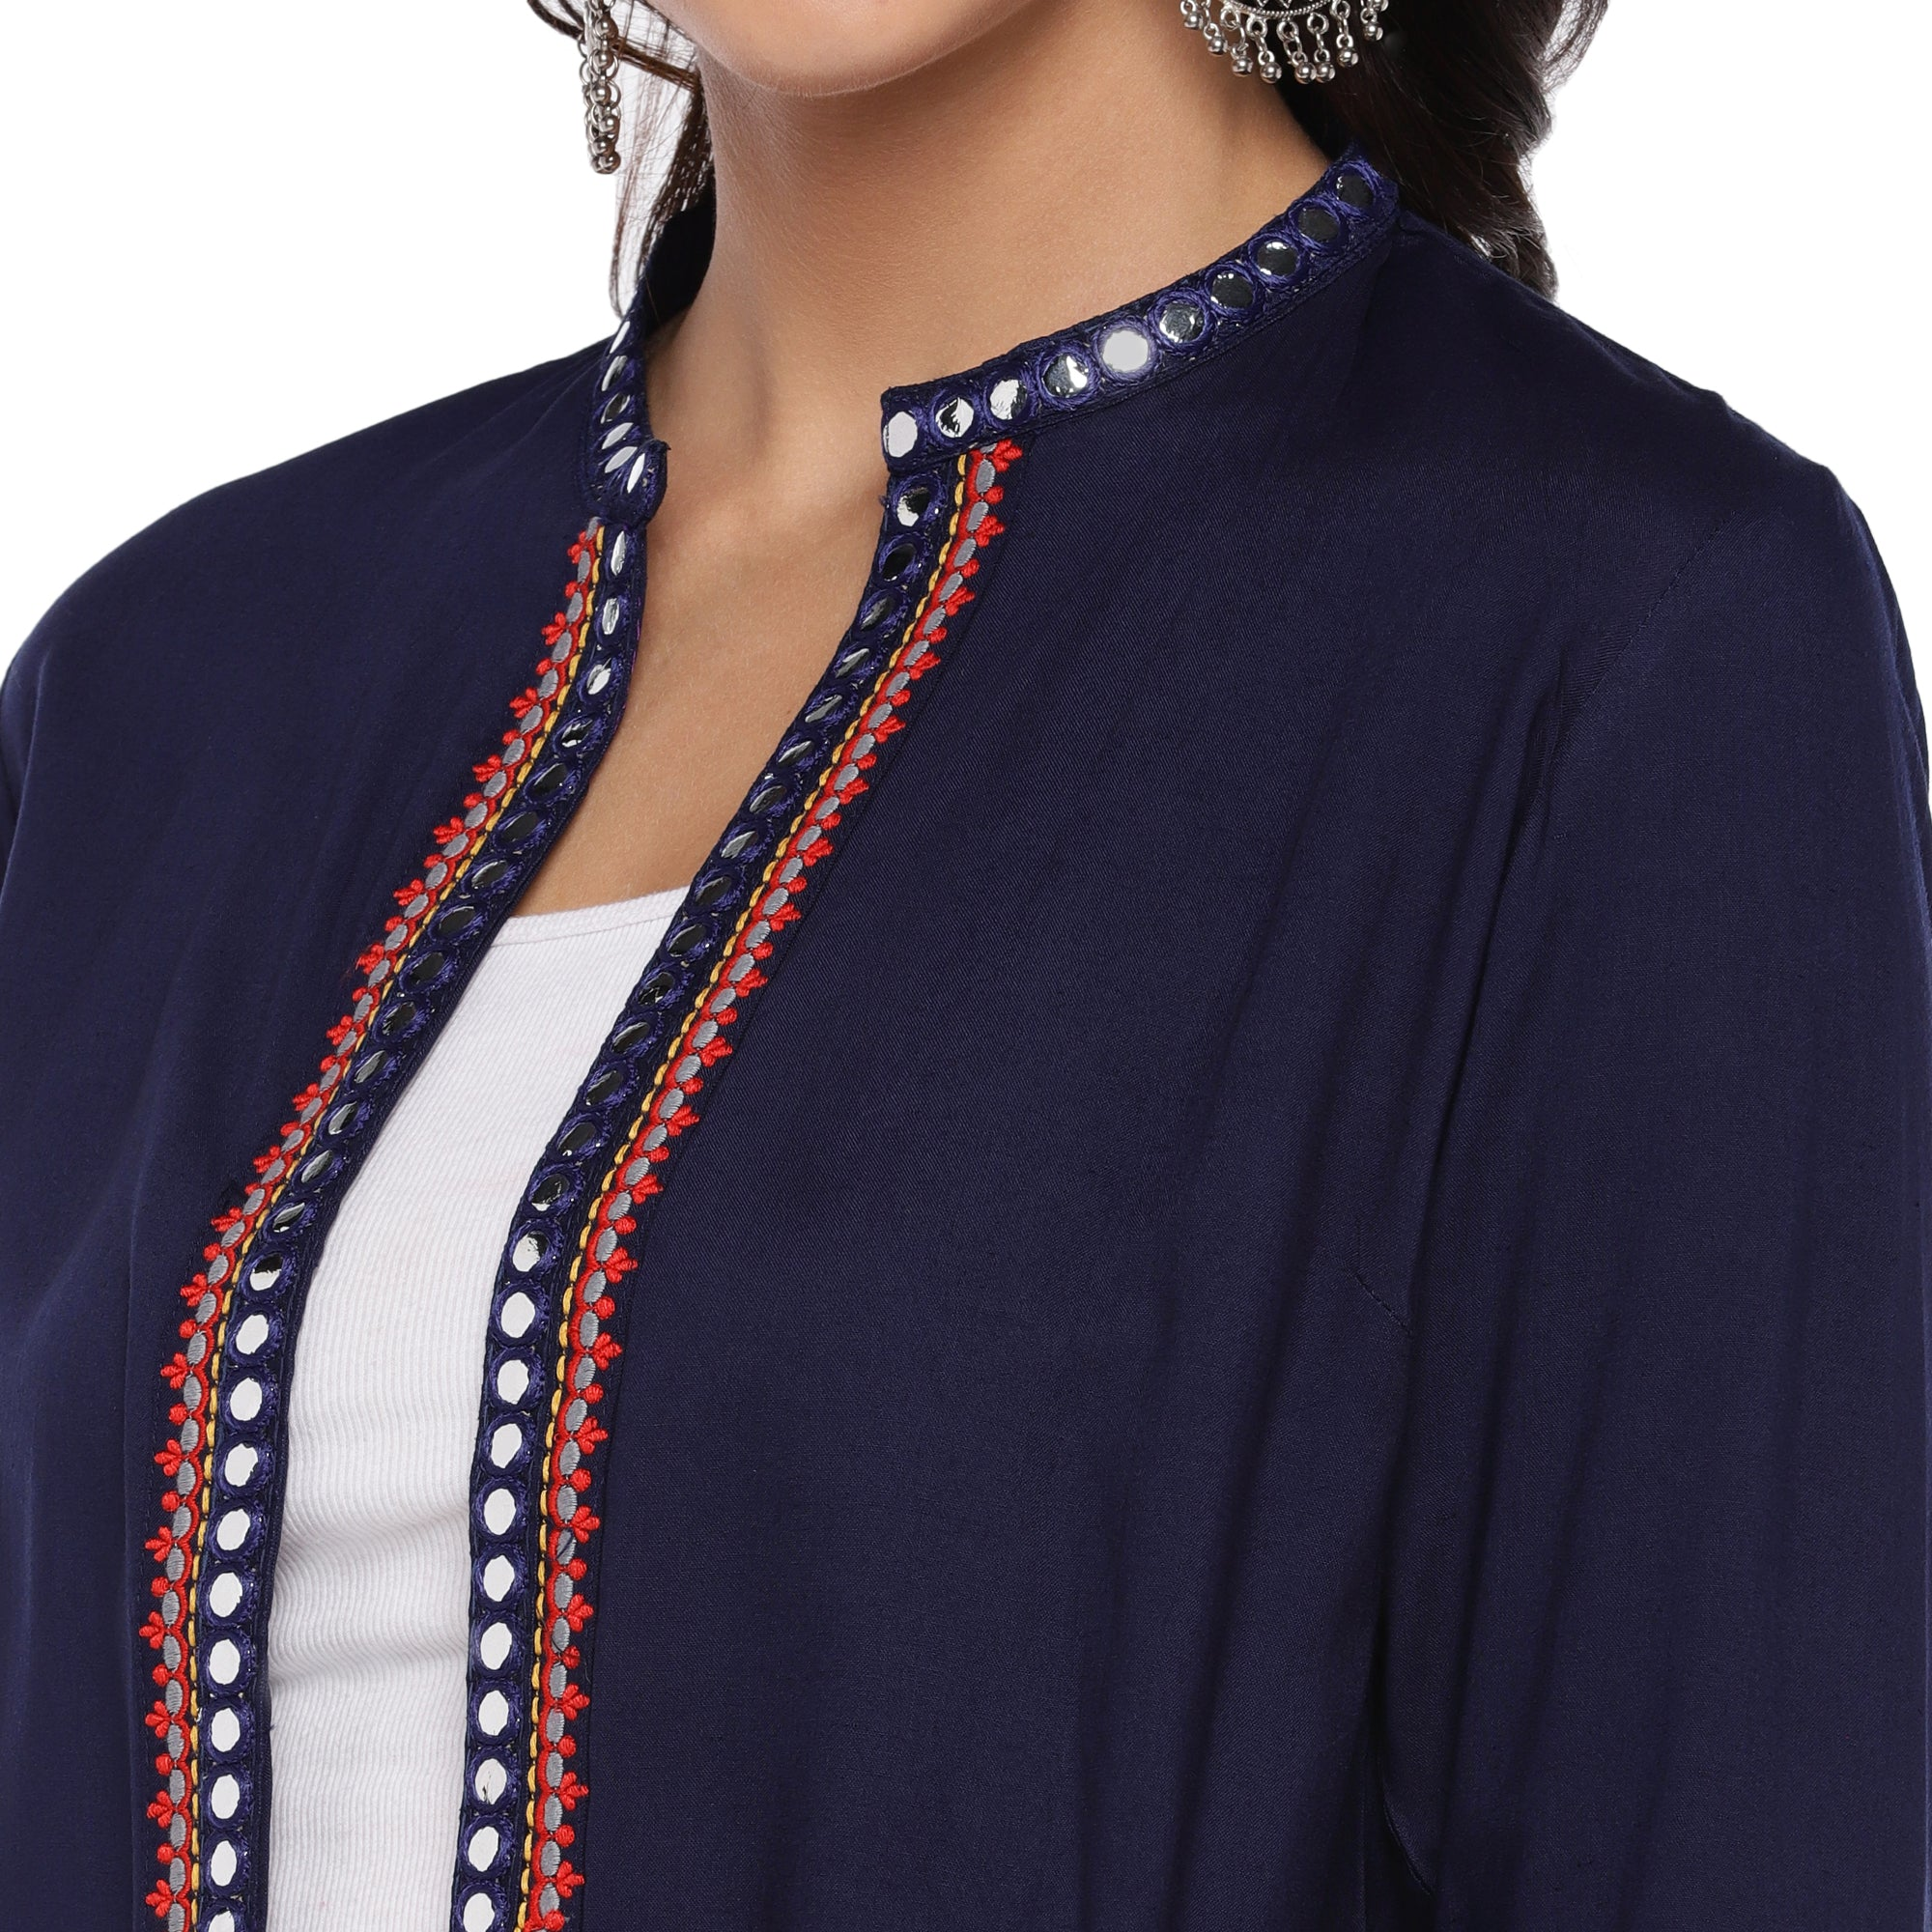 Navy Blue Embellished Open Front Shrug-5